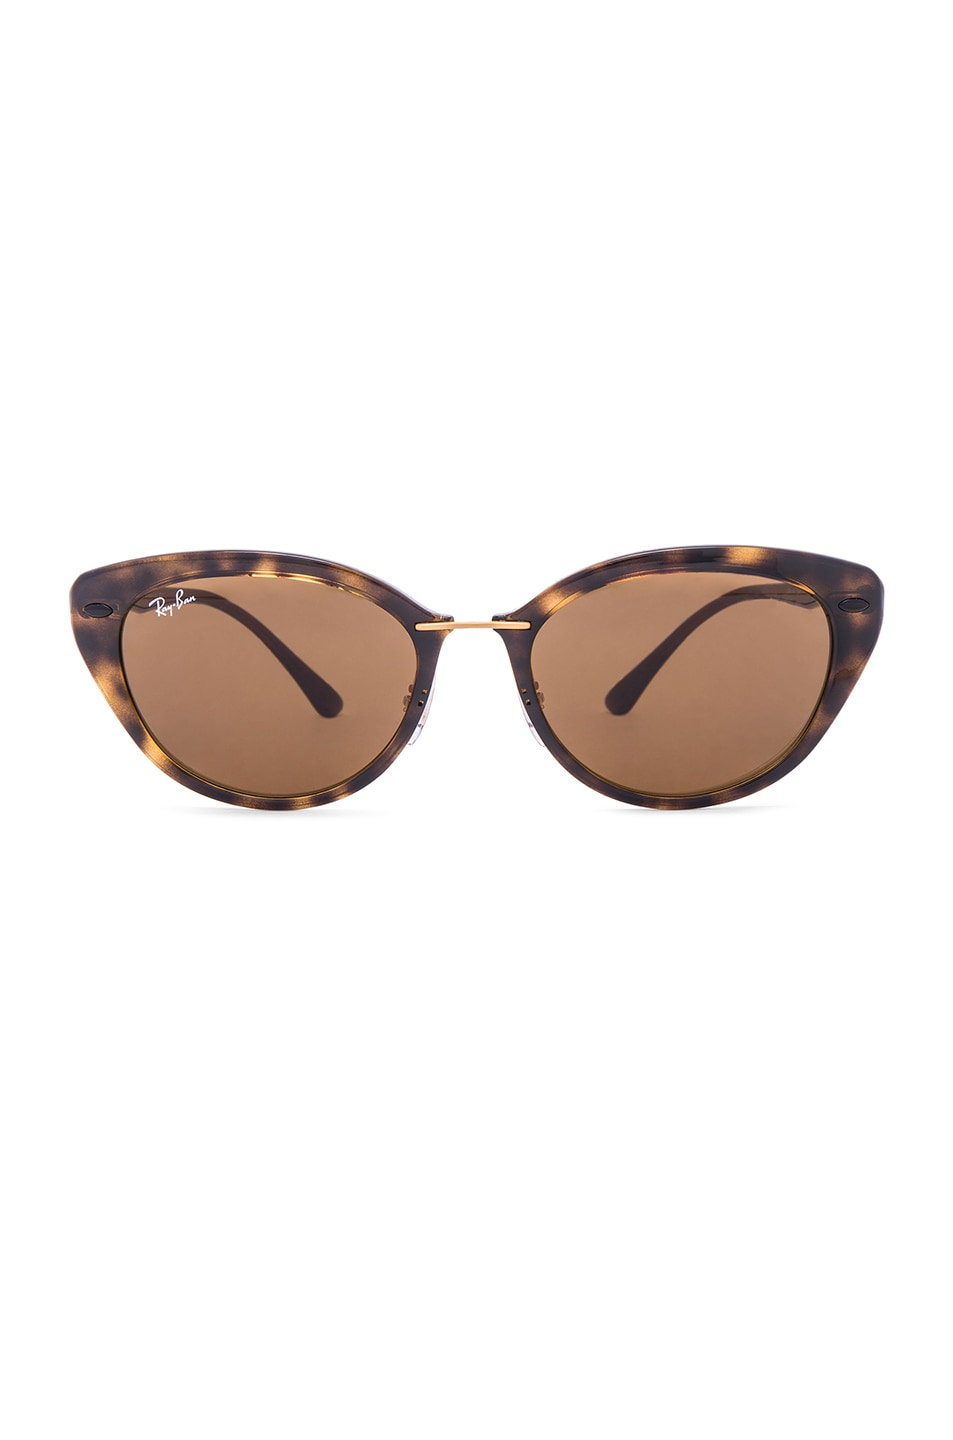 Image 1 of Ray-Ban Cat Eye Sunglasses in Brown Tortoise